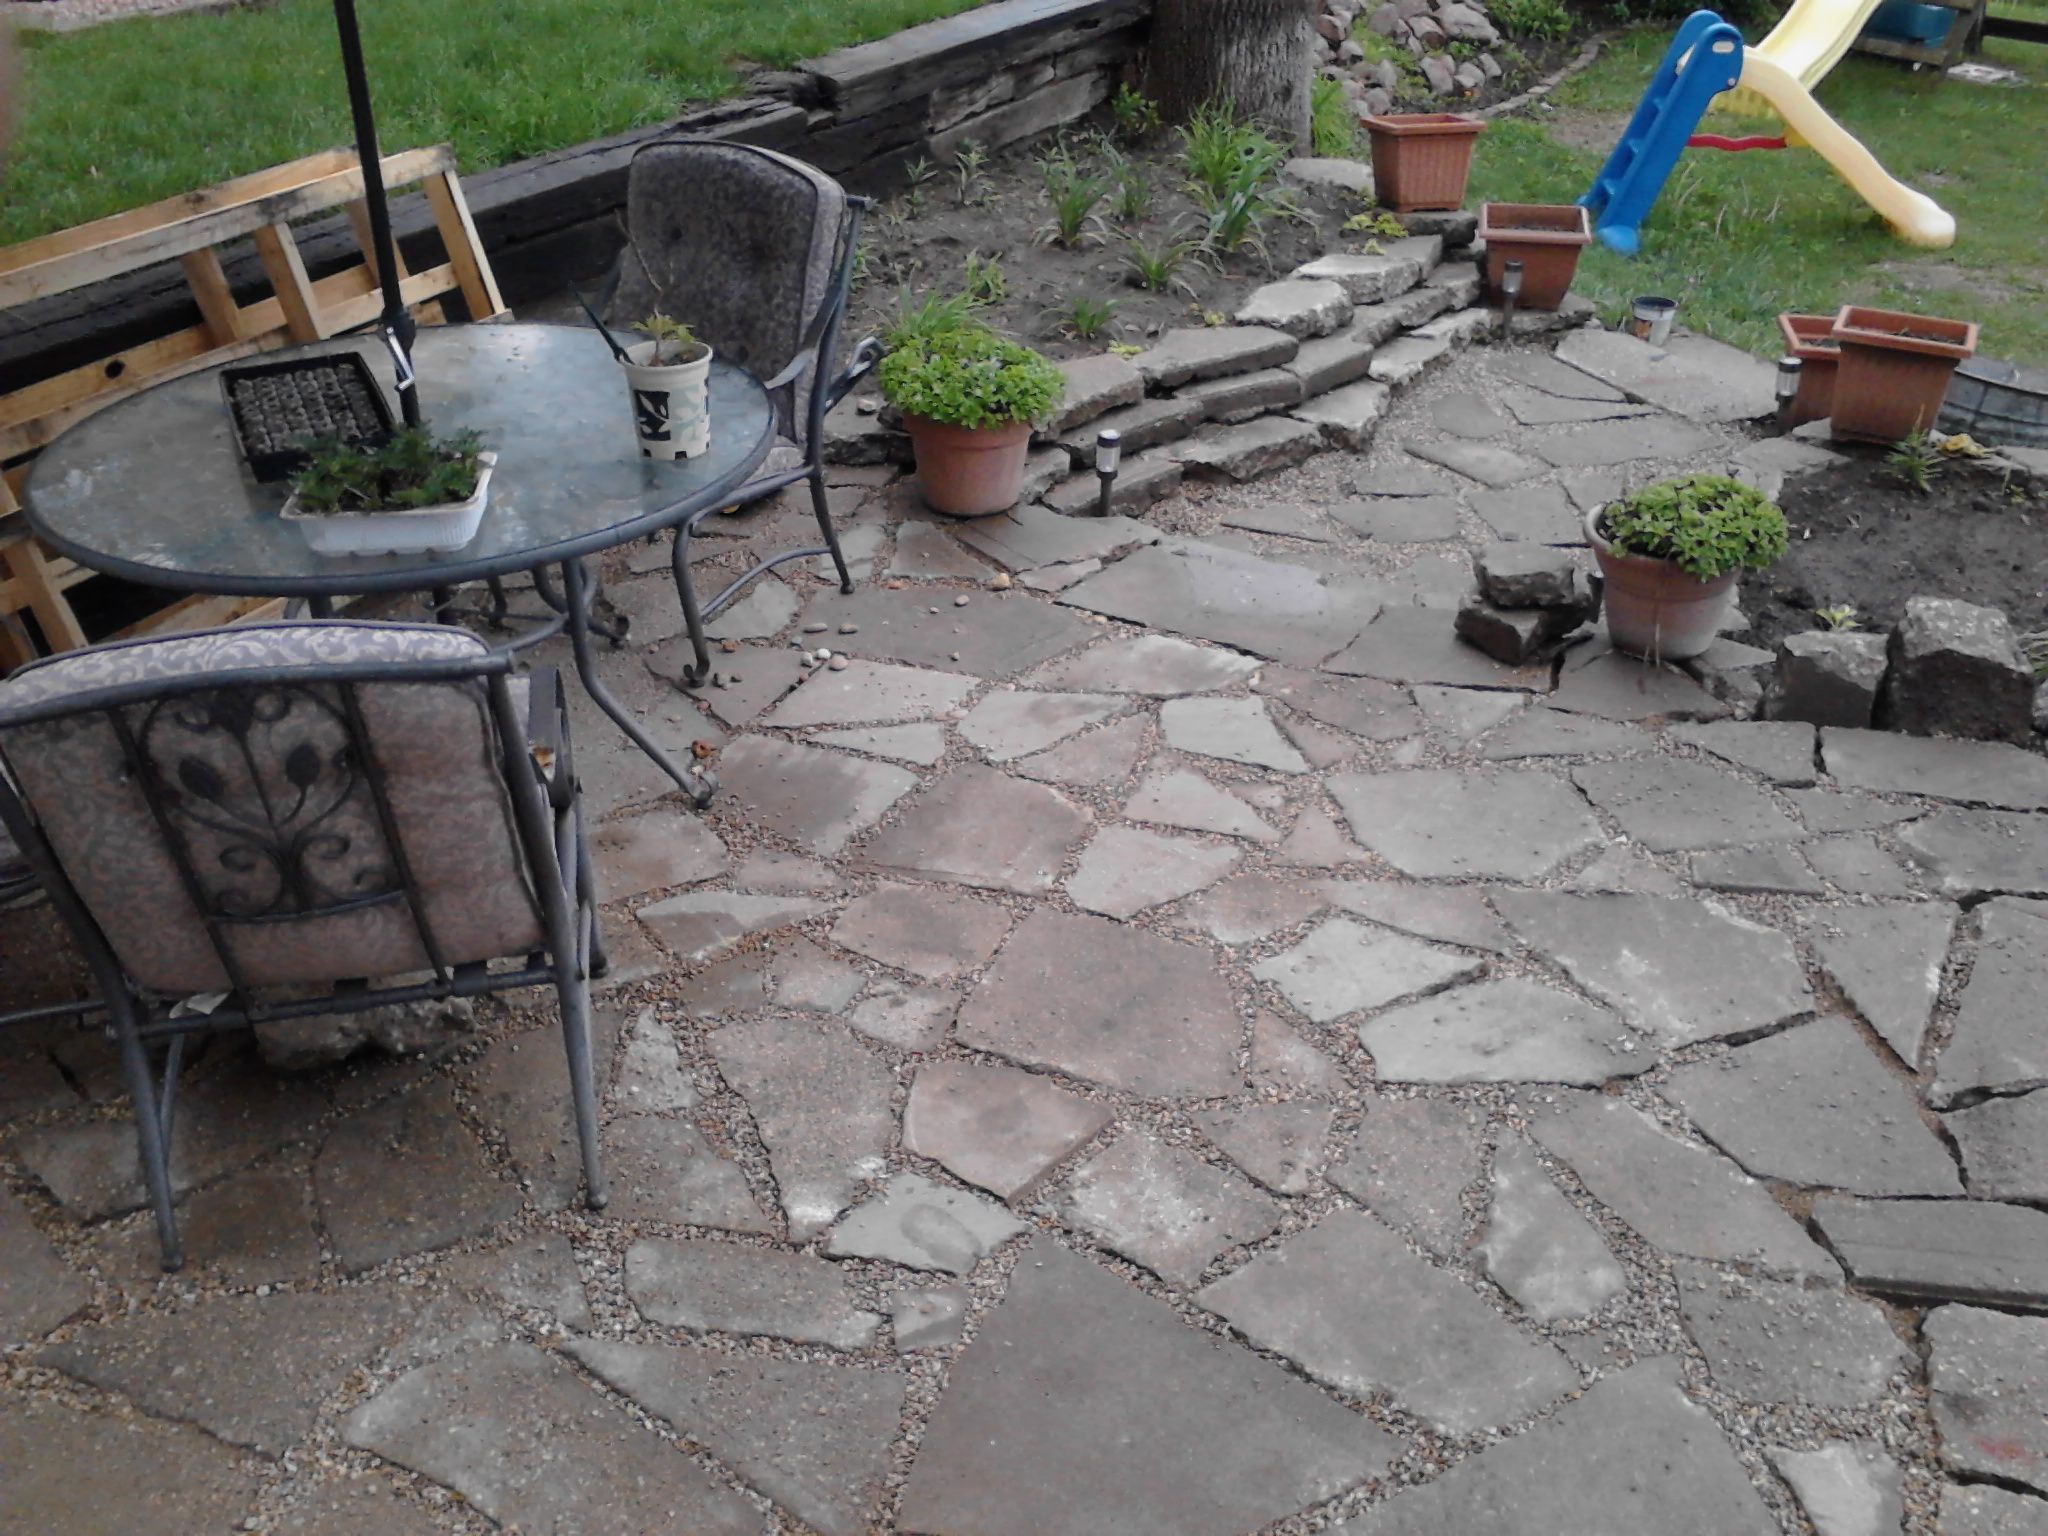 Recycled Concrete Patio | My re-use projects | Pinterest ...